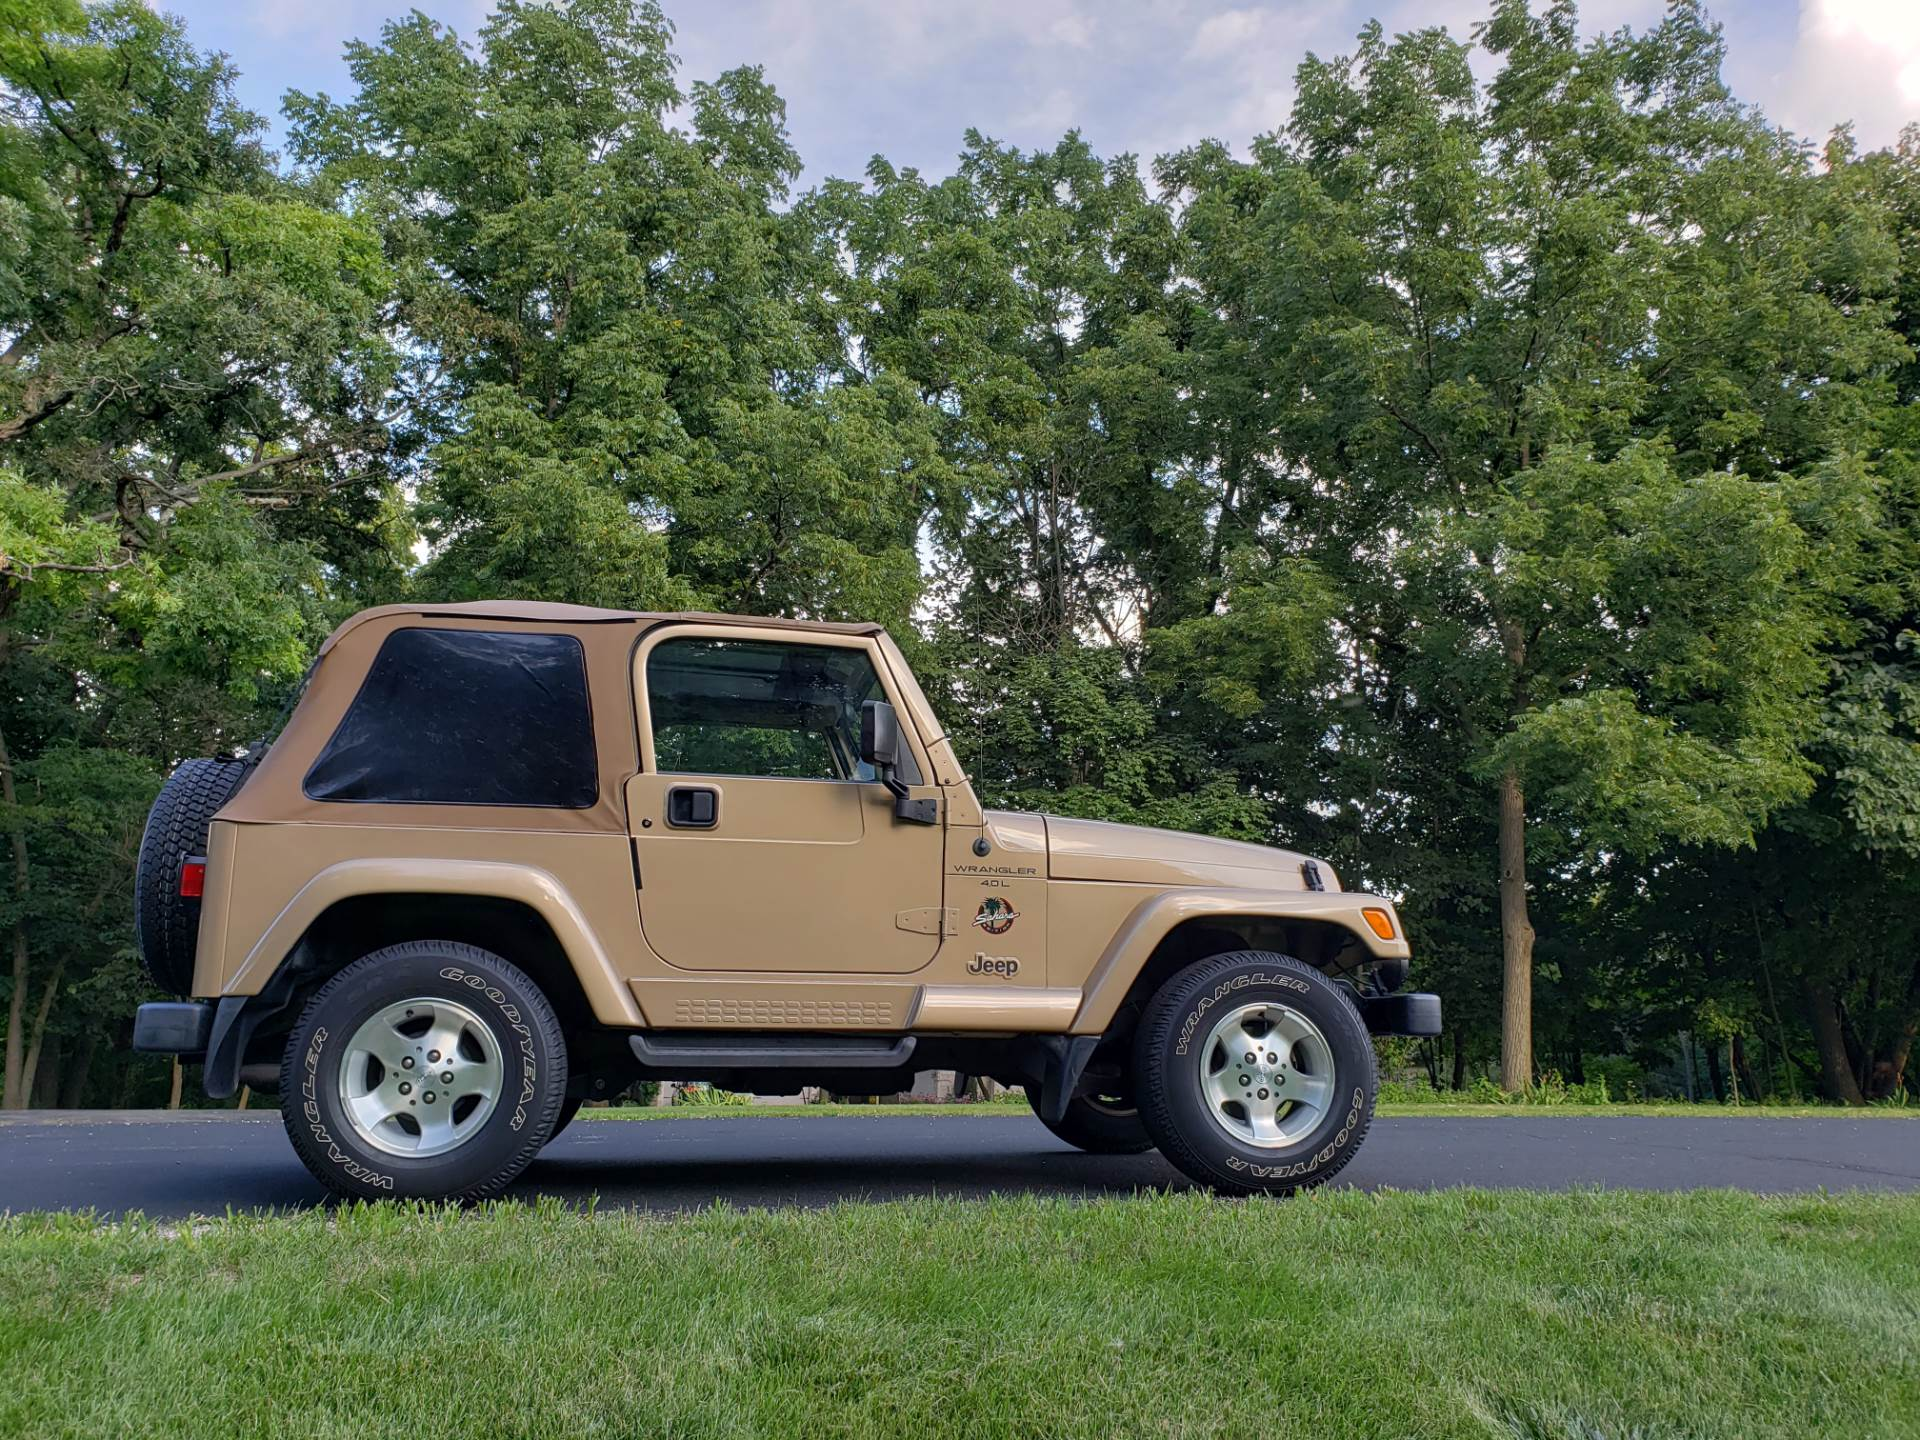 1999 Jeep Wrangler Sahara 2dr 4WD SUV in Big Bend, Wisconsin - Photo 56